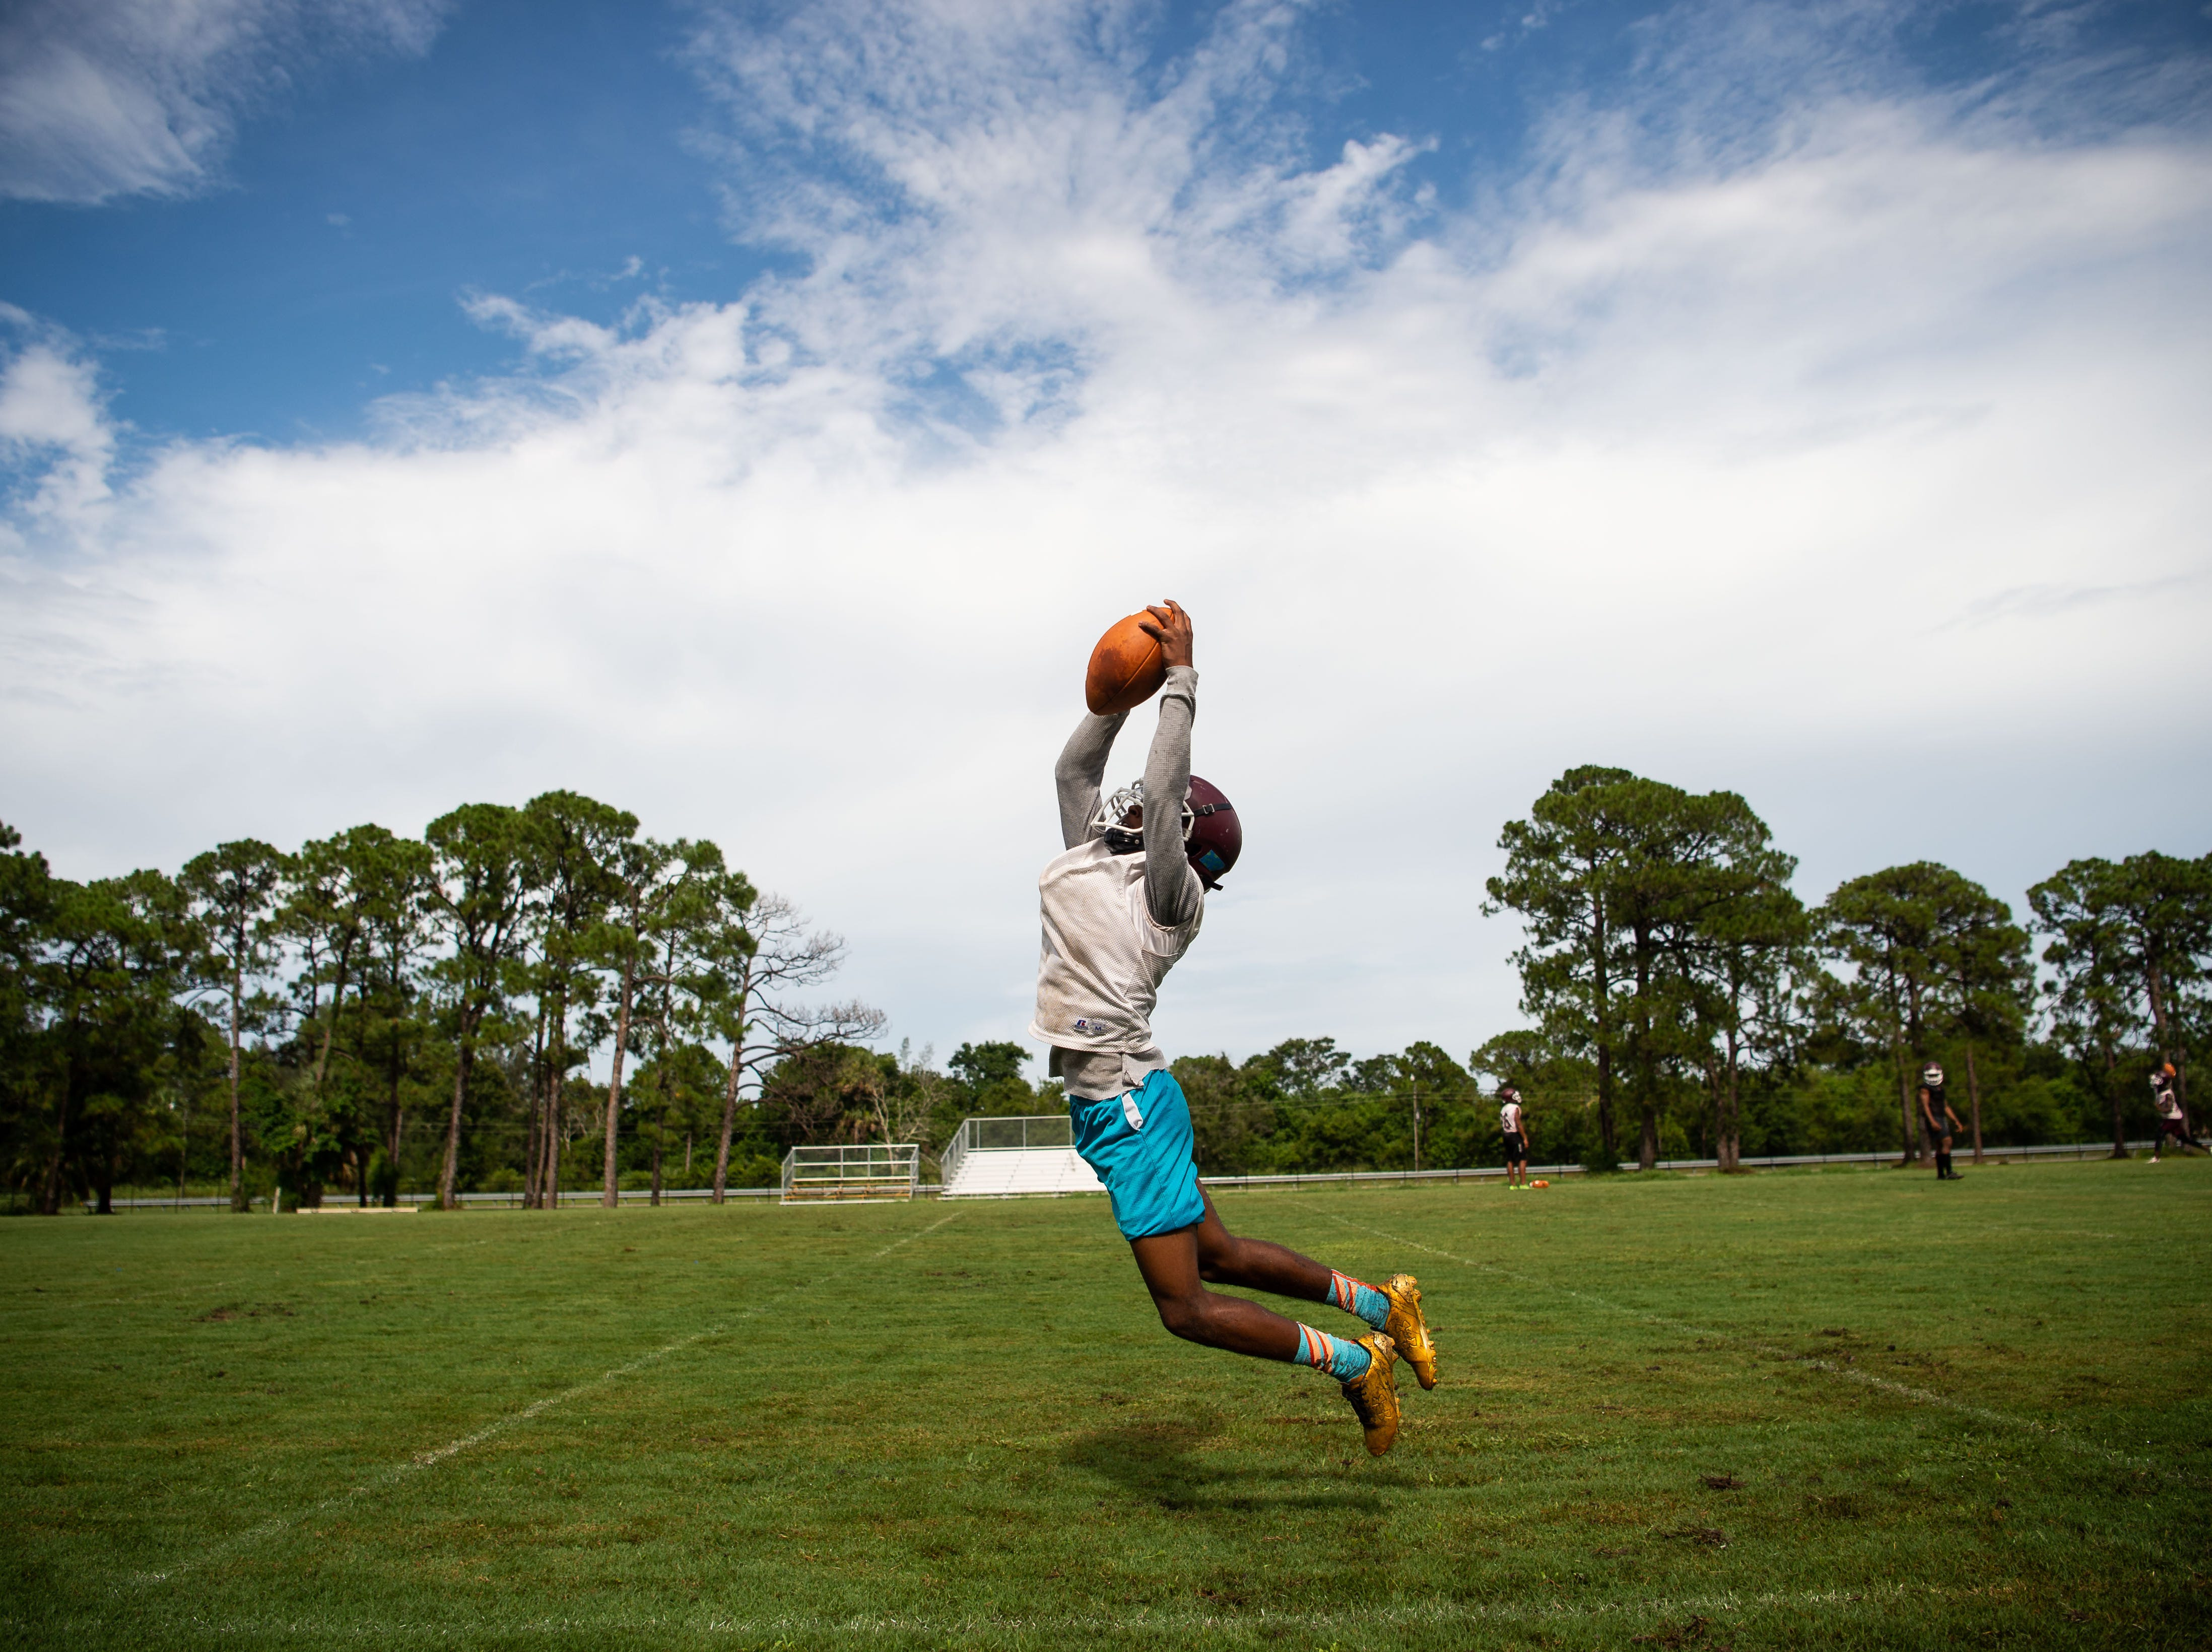 Fort Pierce Westwood receiver Cameron Webb catches a pass during a drill on the first day of football practice Monday, July 30, 2018, at Fort Pierce Westwood High School.